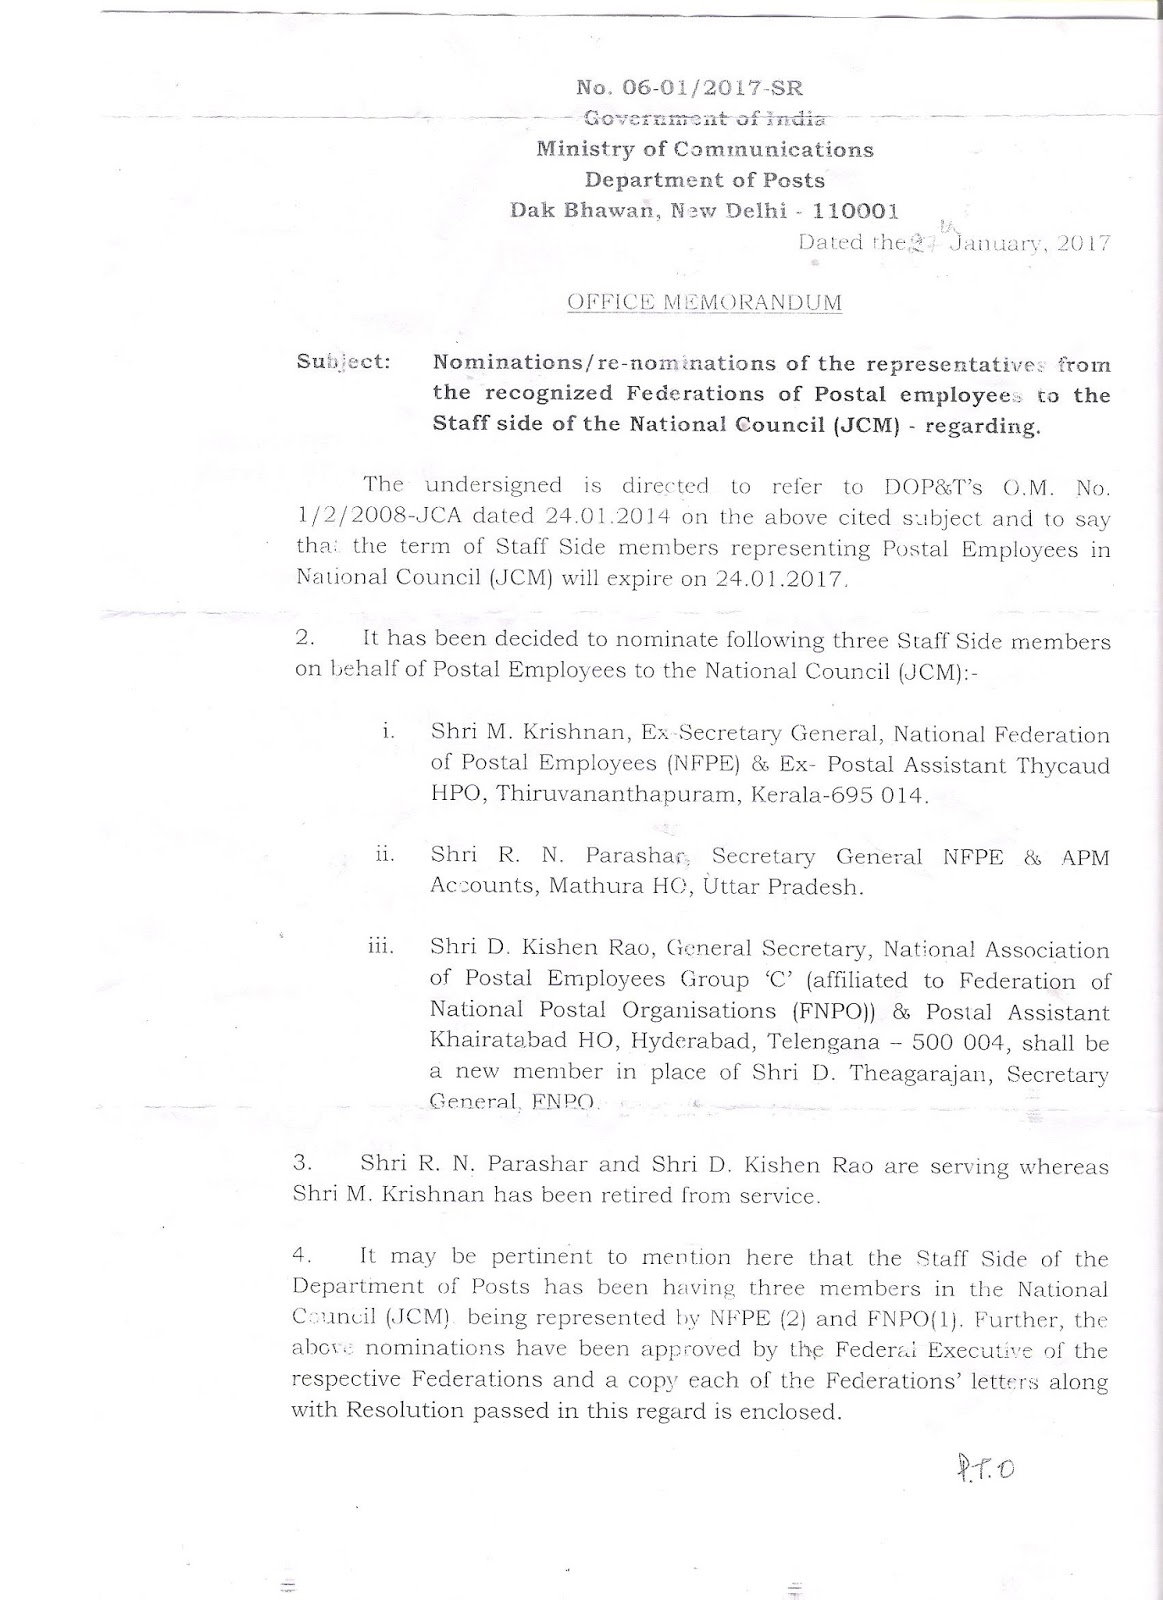 all rms and mms employees union mailguards multi tasking department of posts nominated staff side member of the national council jcm